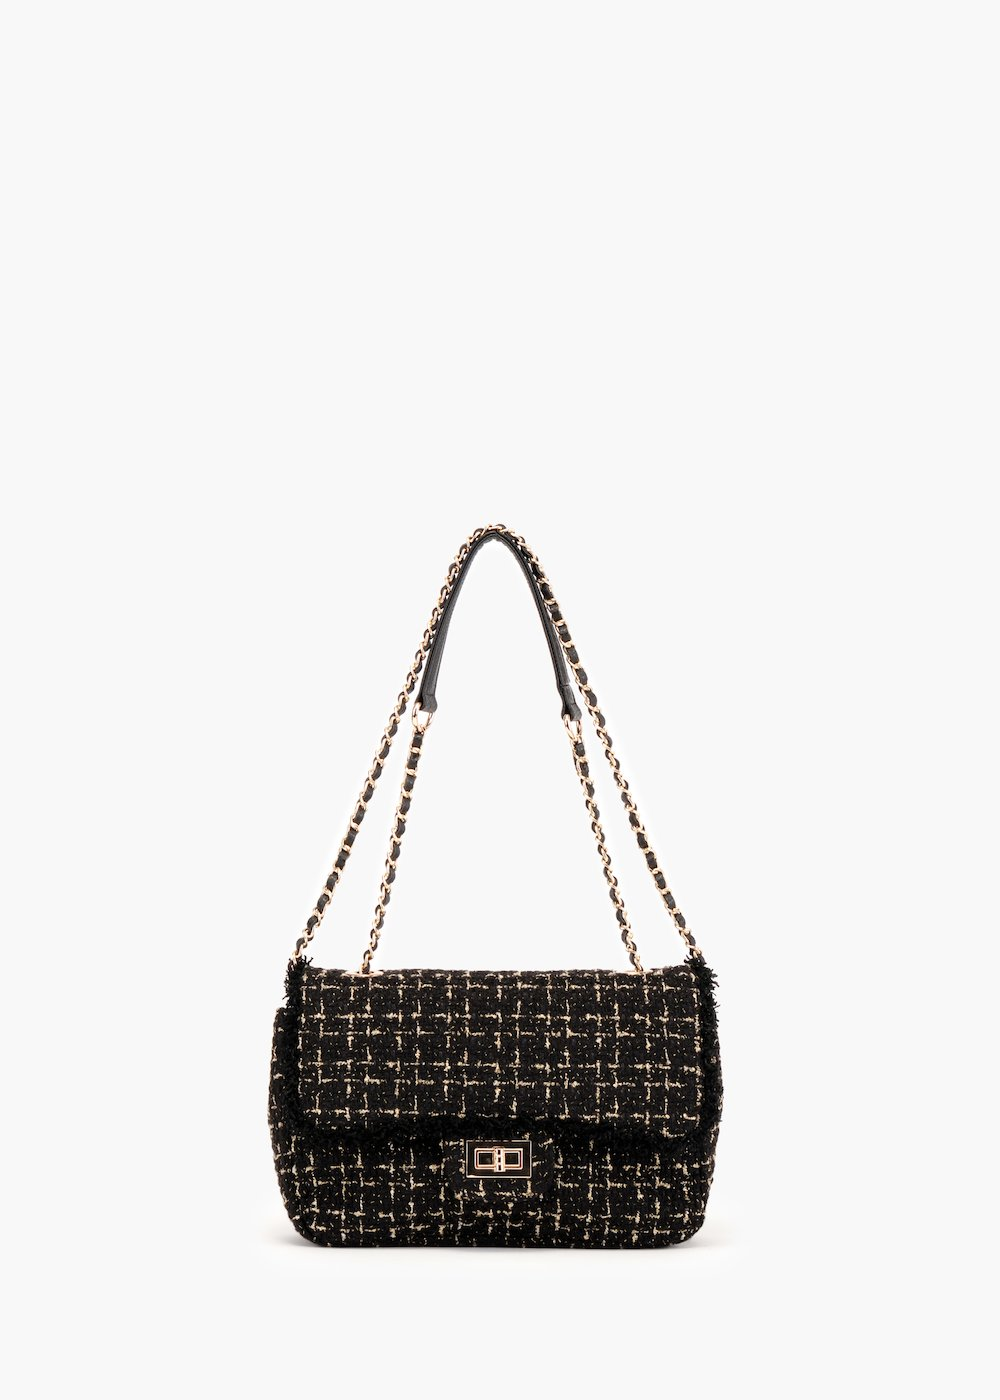 Giada Gold pochette in bouclé fabric - Black / Gold - Woman